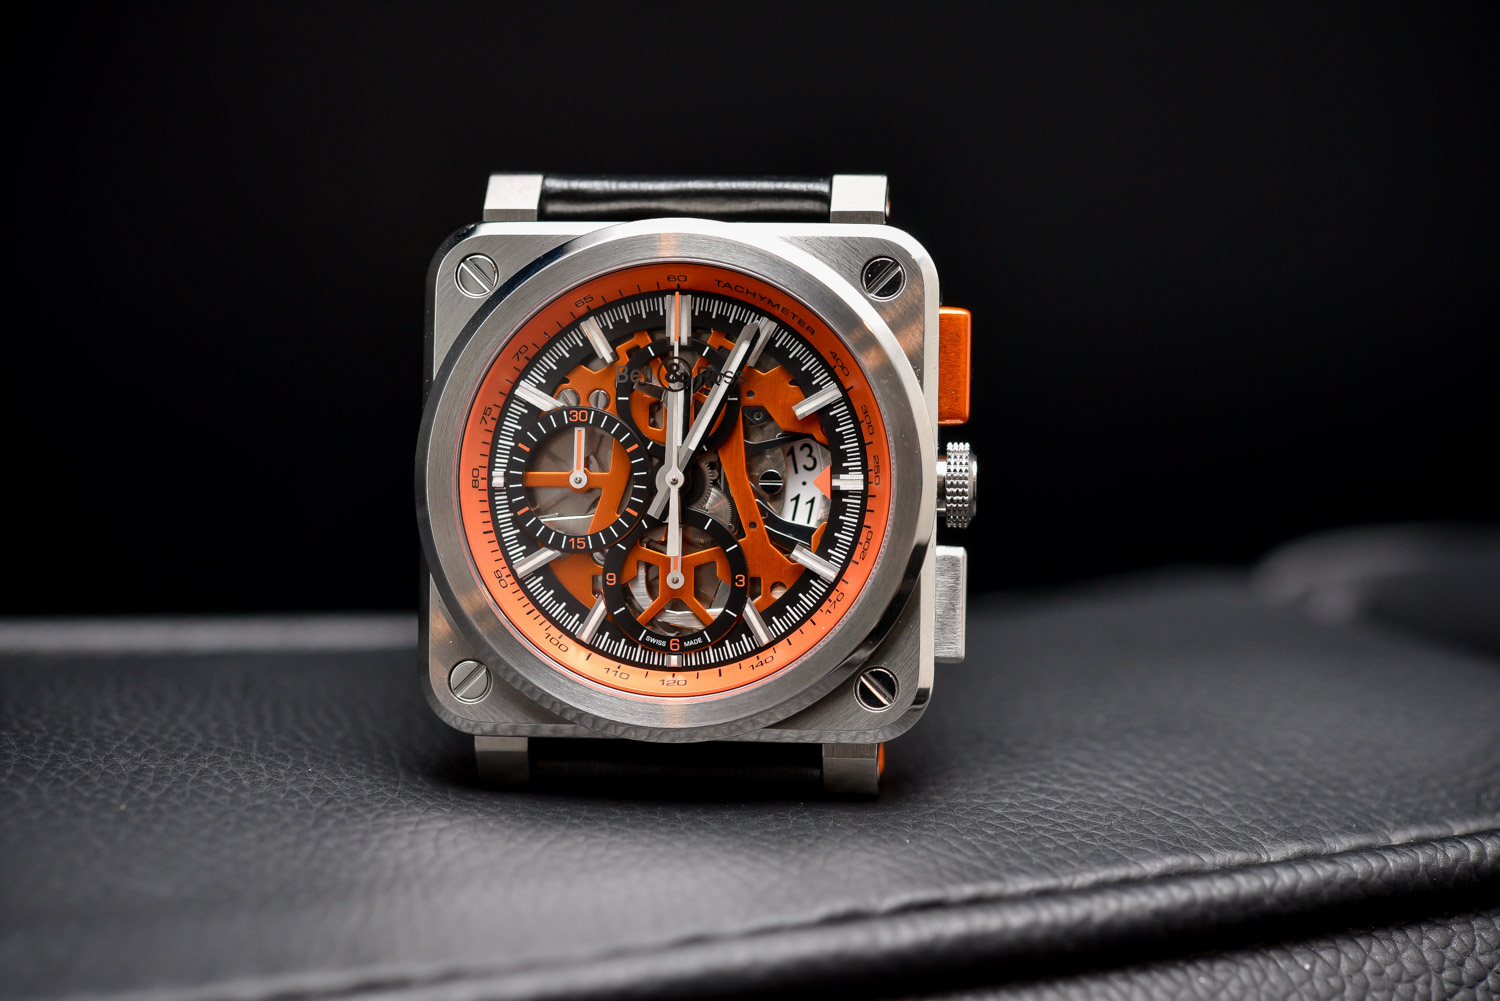 Bell & Ross BR03-94 AeroGT Orange Skeleton Chronograph